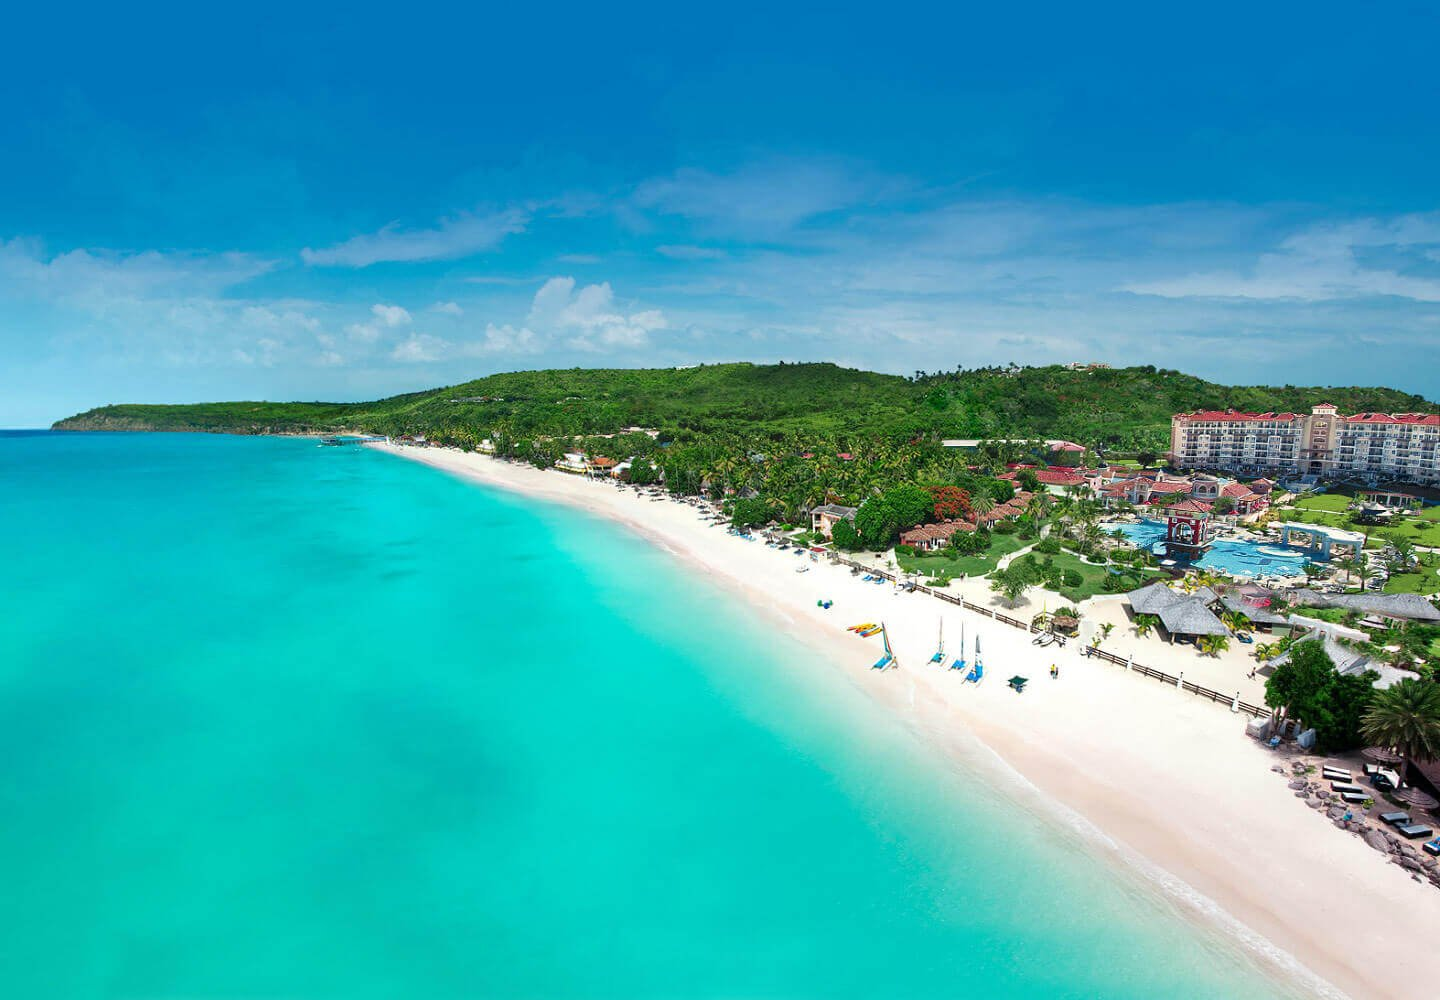 Sandals Grande Antigua - Honeymoons